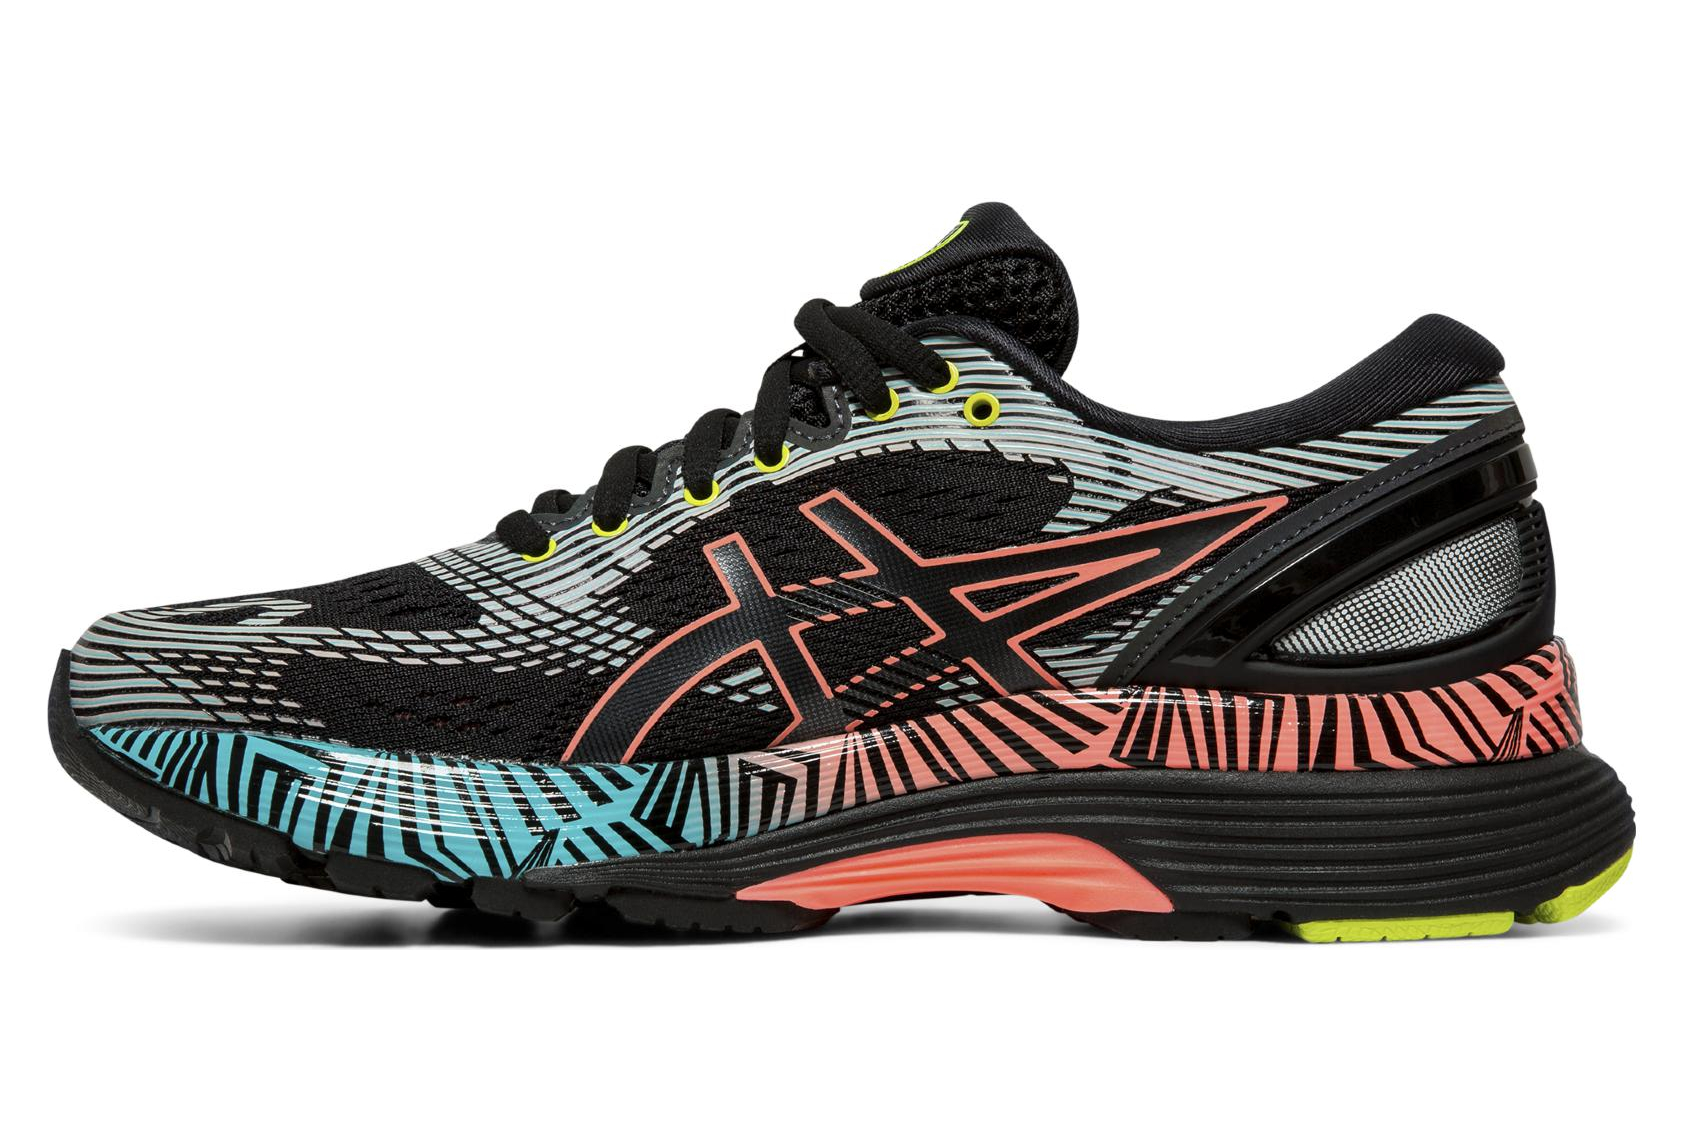 Asics Gel Nimbus 21 Lite Show Black Multi color Women